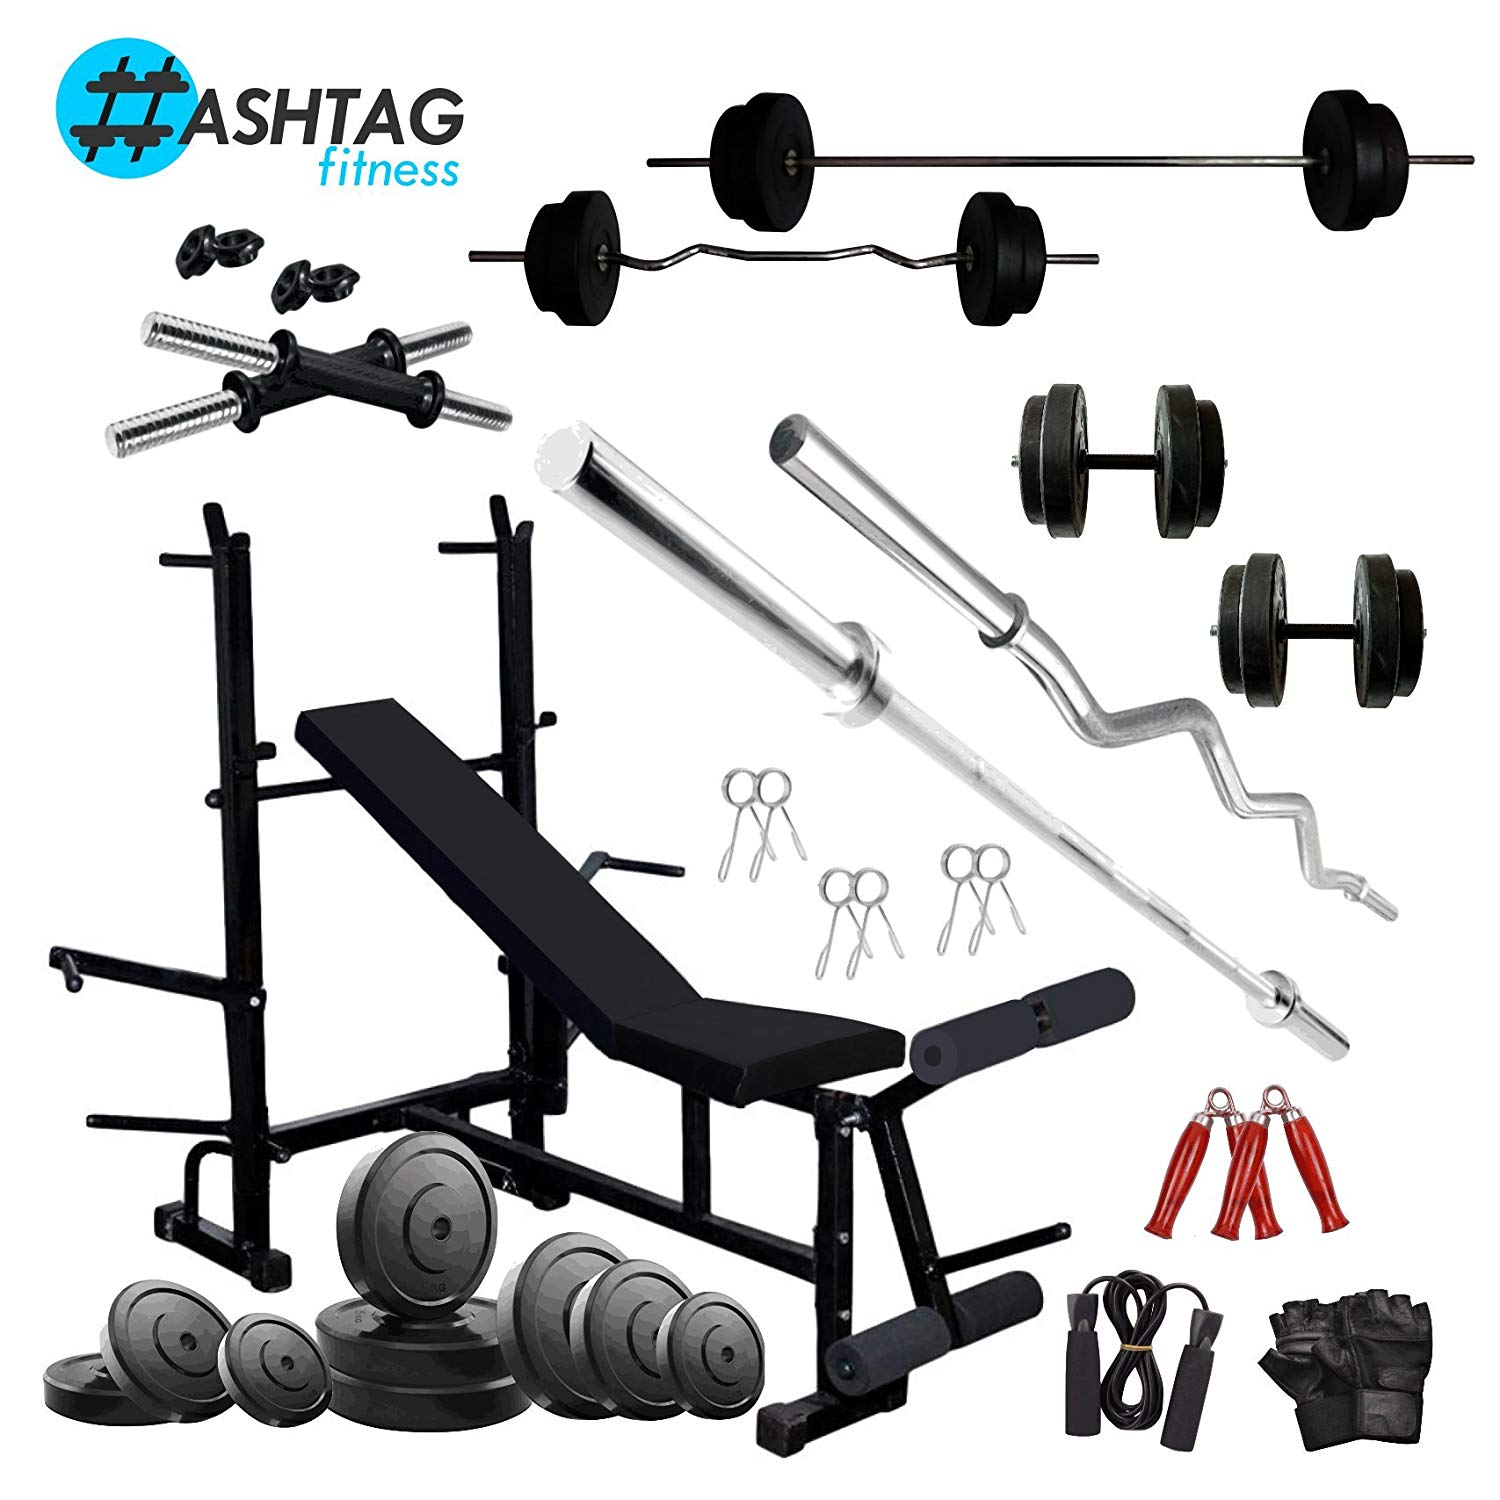 HASHTAG FITNESS 60 kg Rubber Home Gym Combo kit & fitness ...